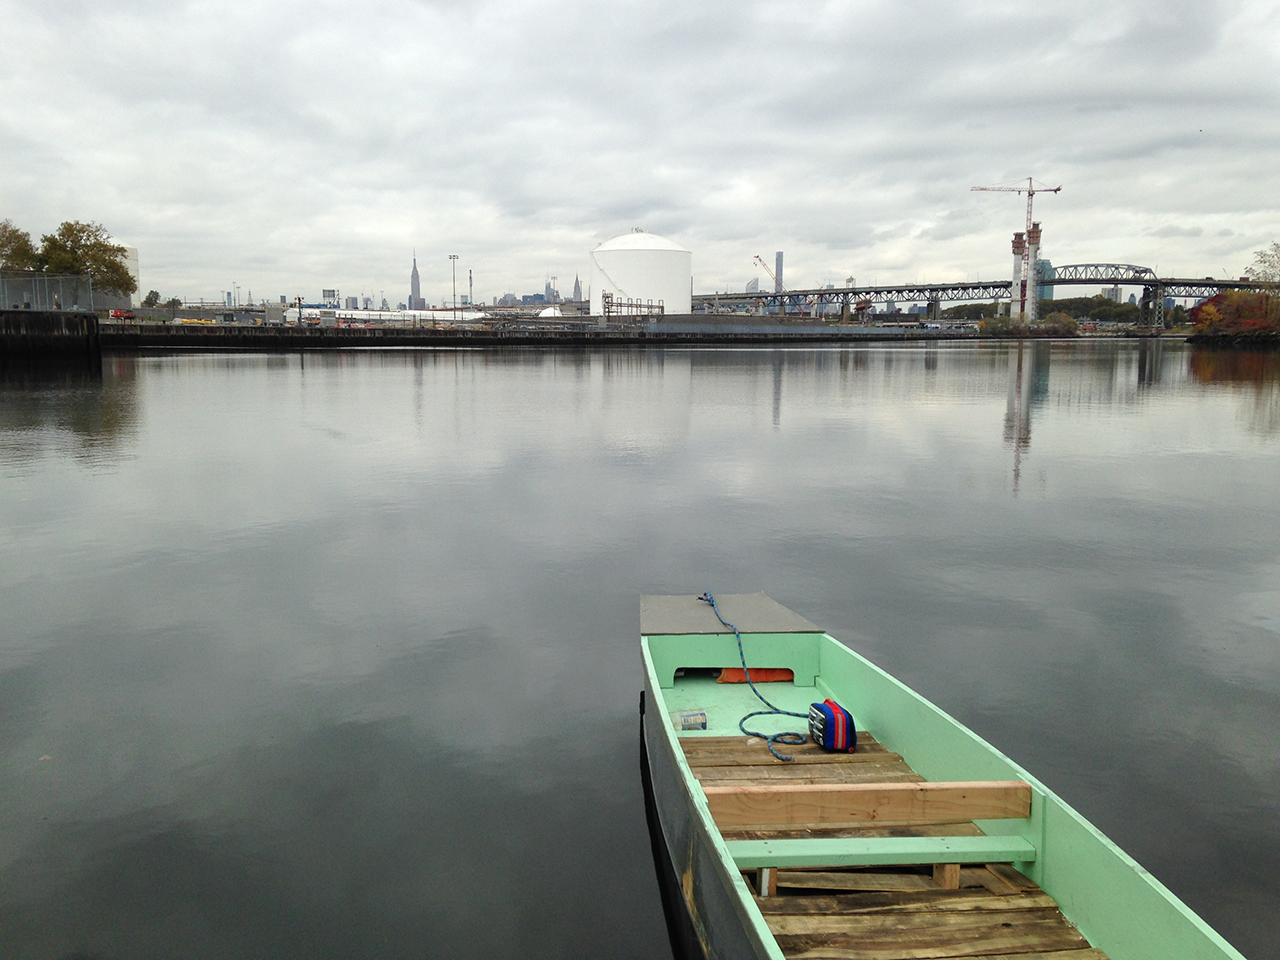 One of Dylan Gauthier's homemade boats on Newtown Creek